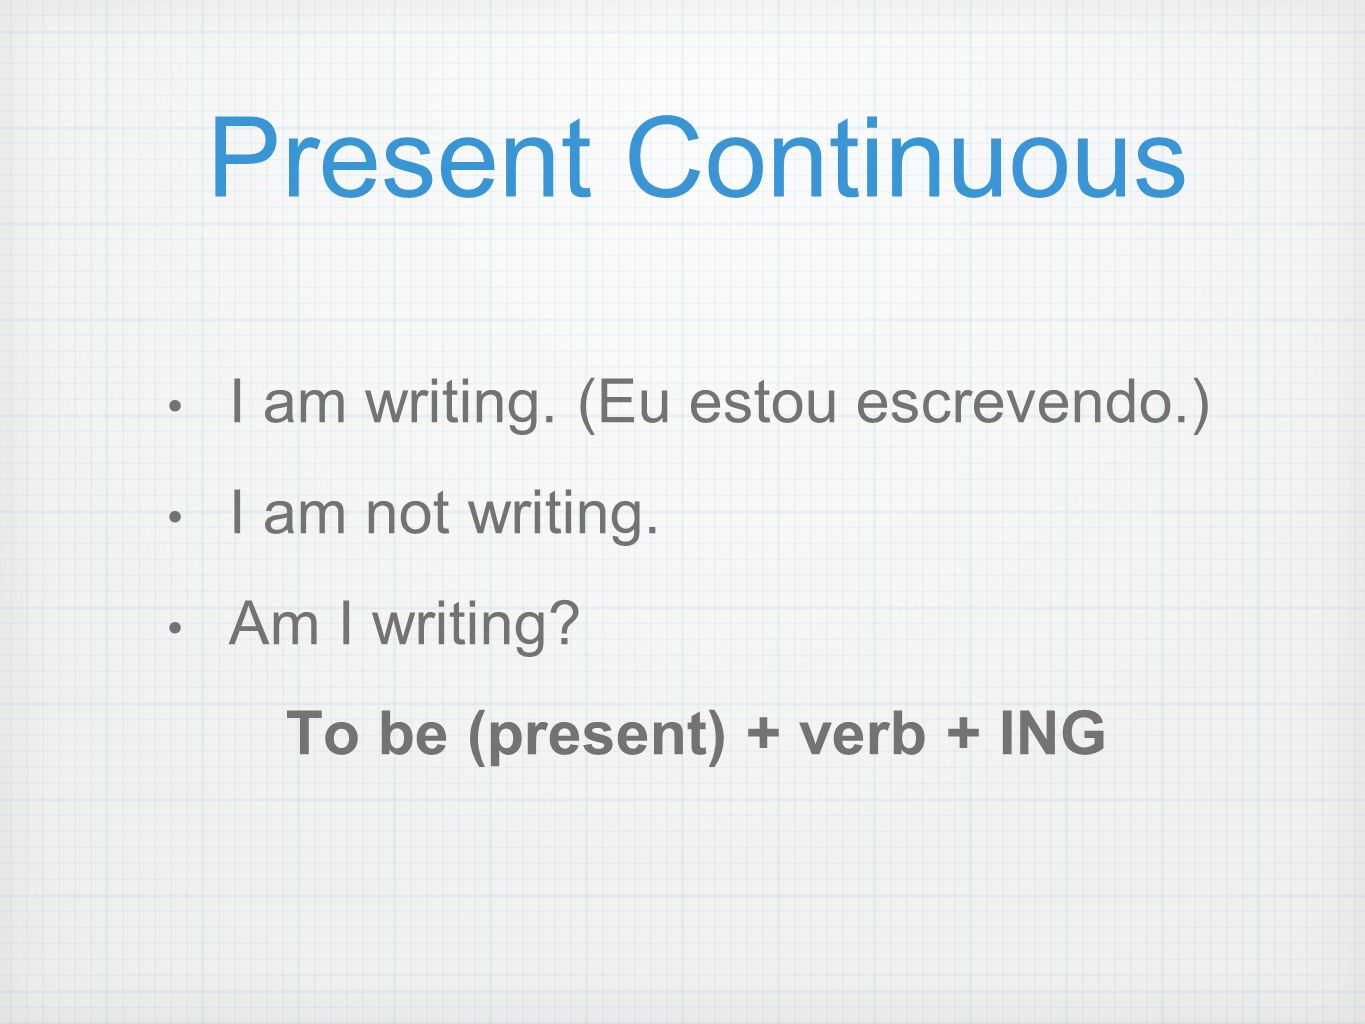 To be (present) + verb + ING